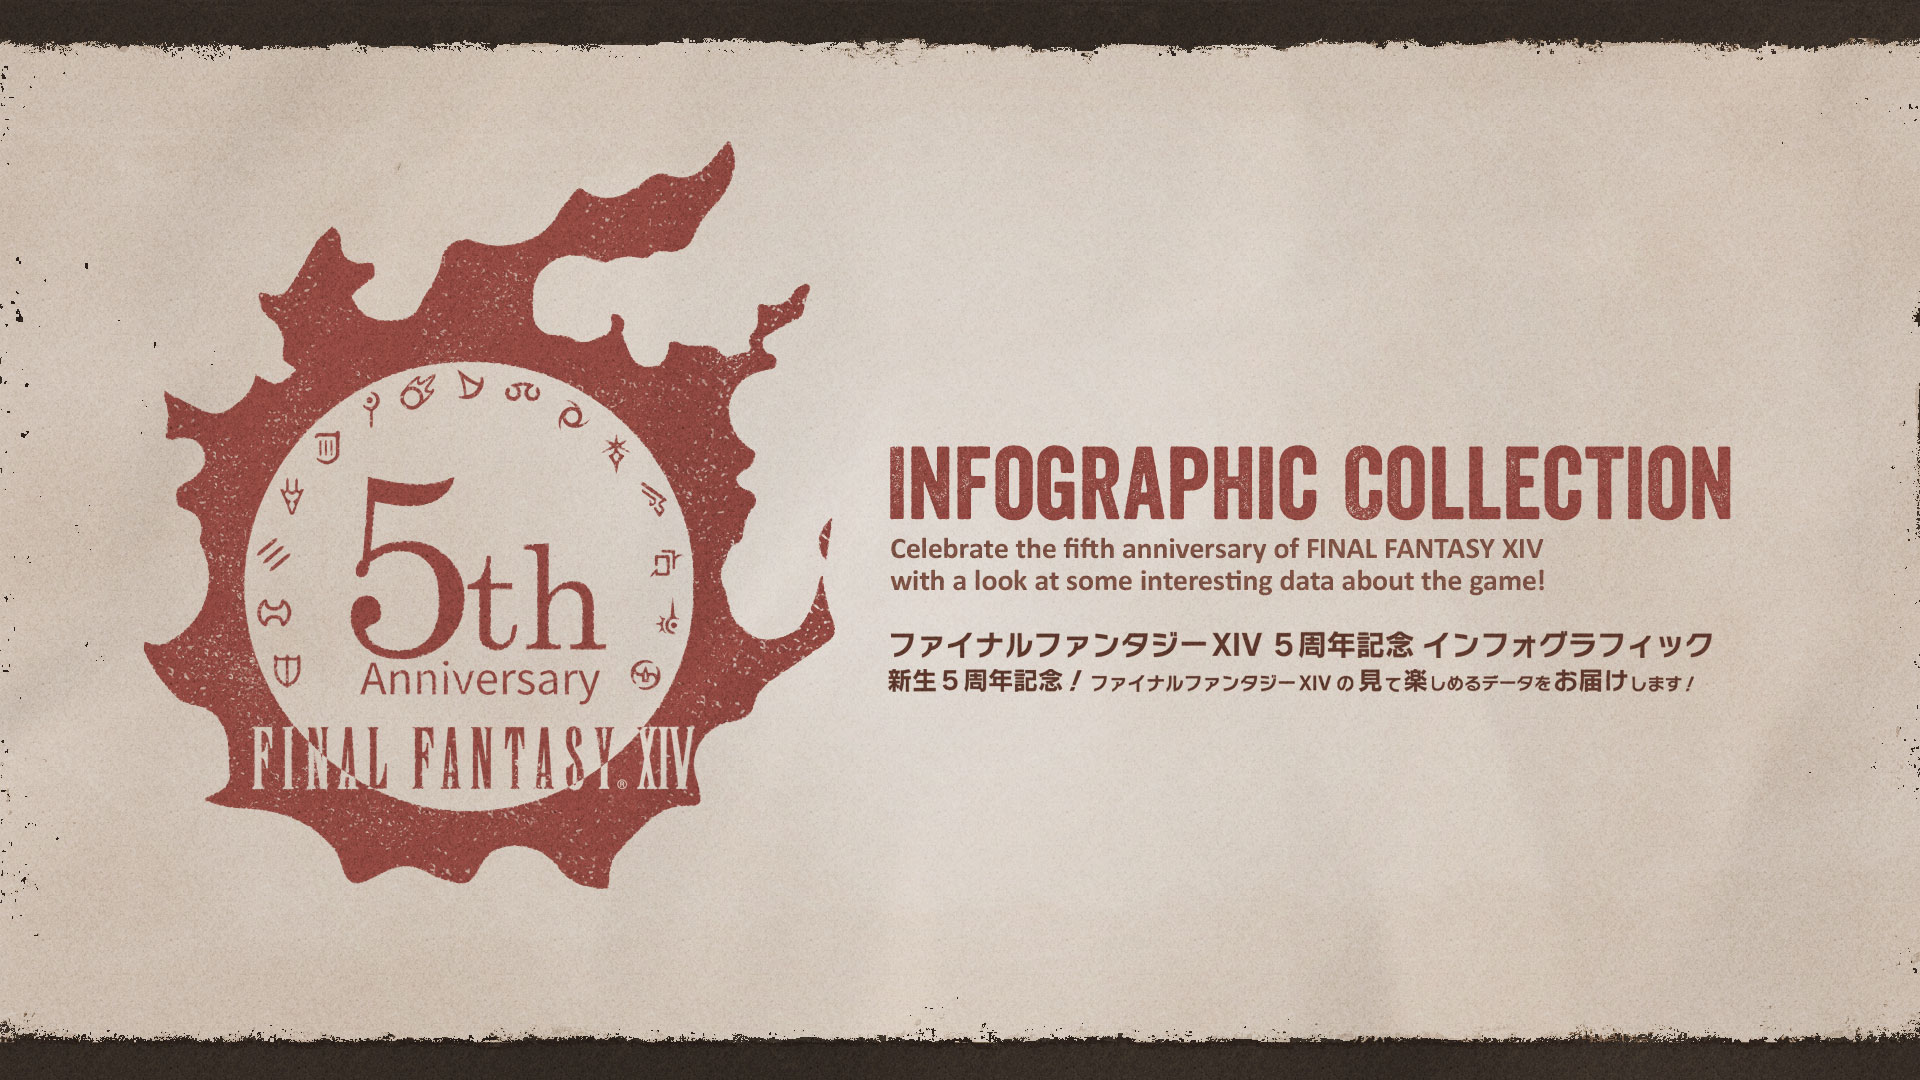 FINAL FANTASY XIV 5th Anniversary Infographic Collection